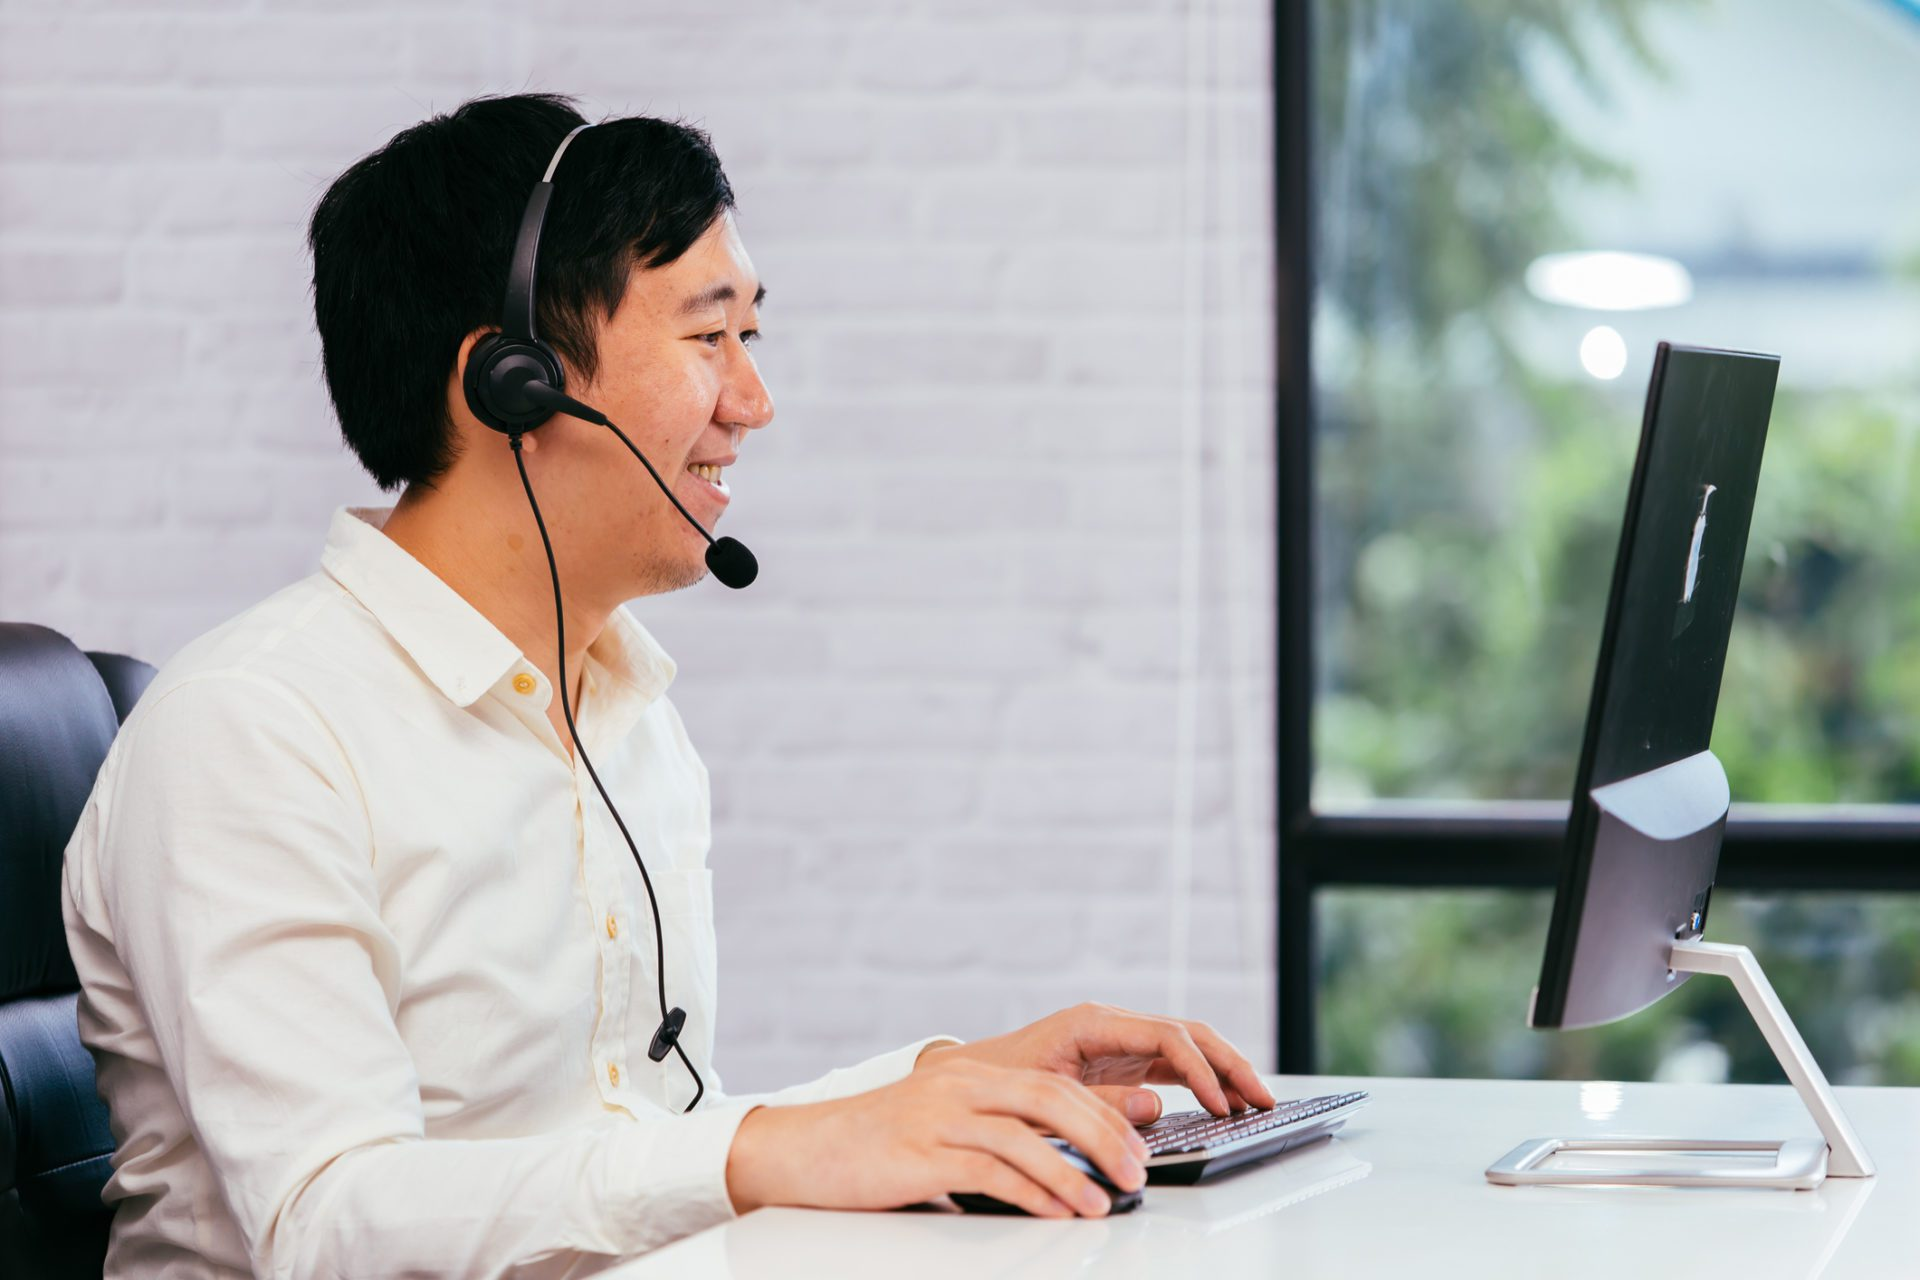 man on headset in office uses new contact center technologies